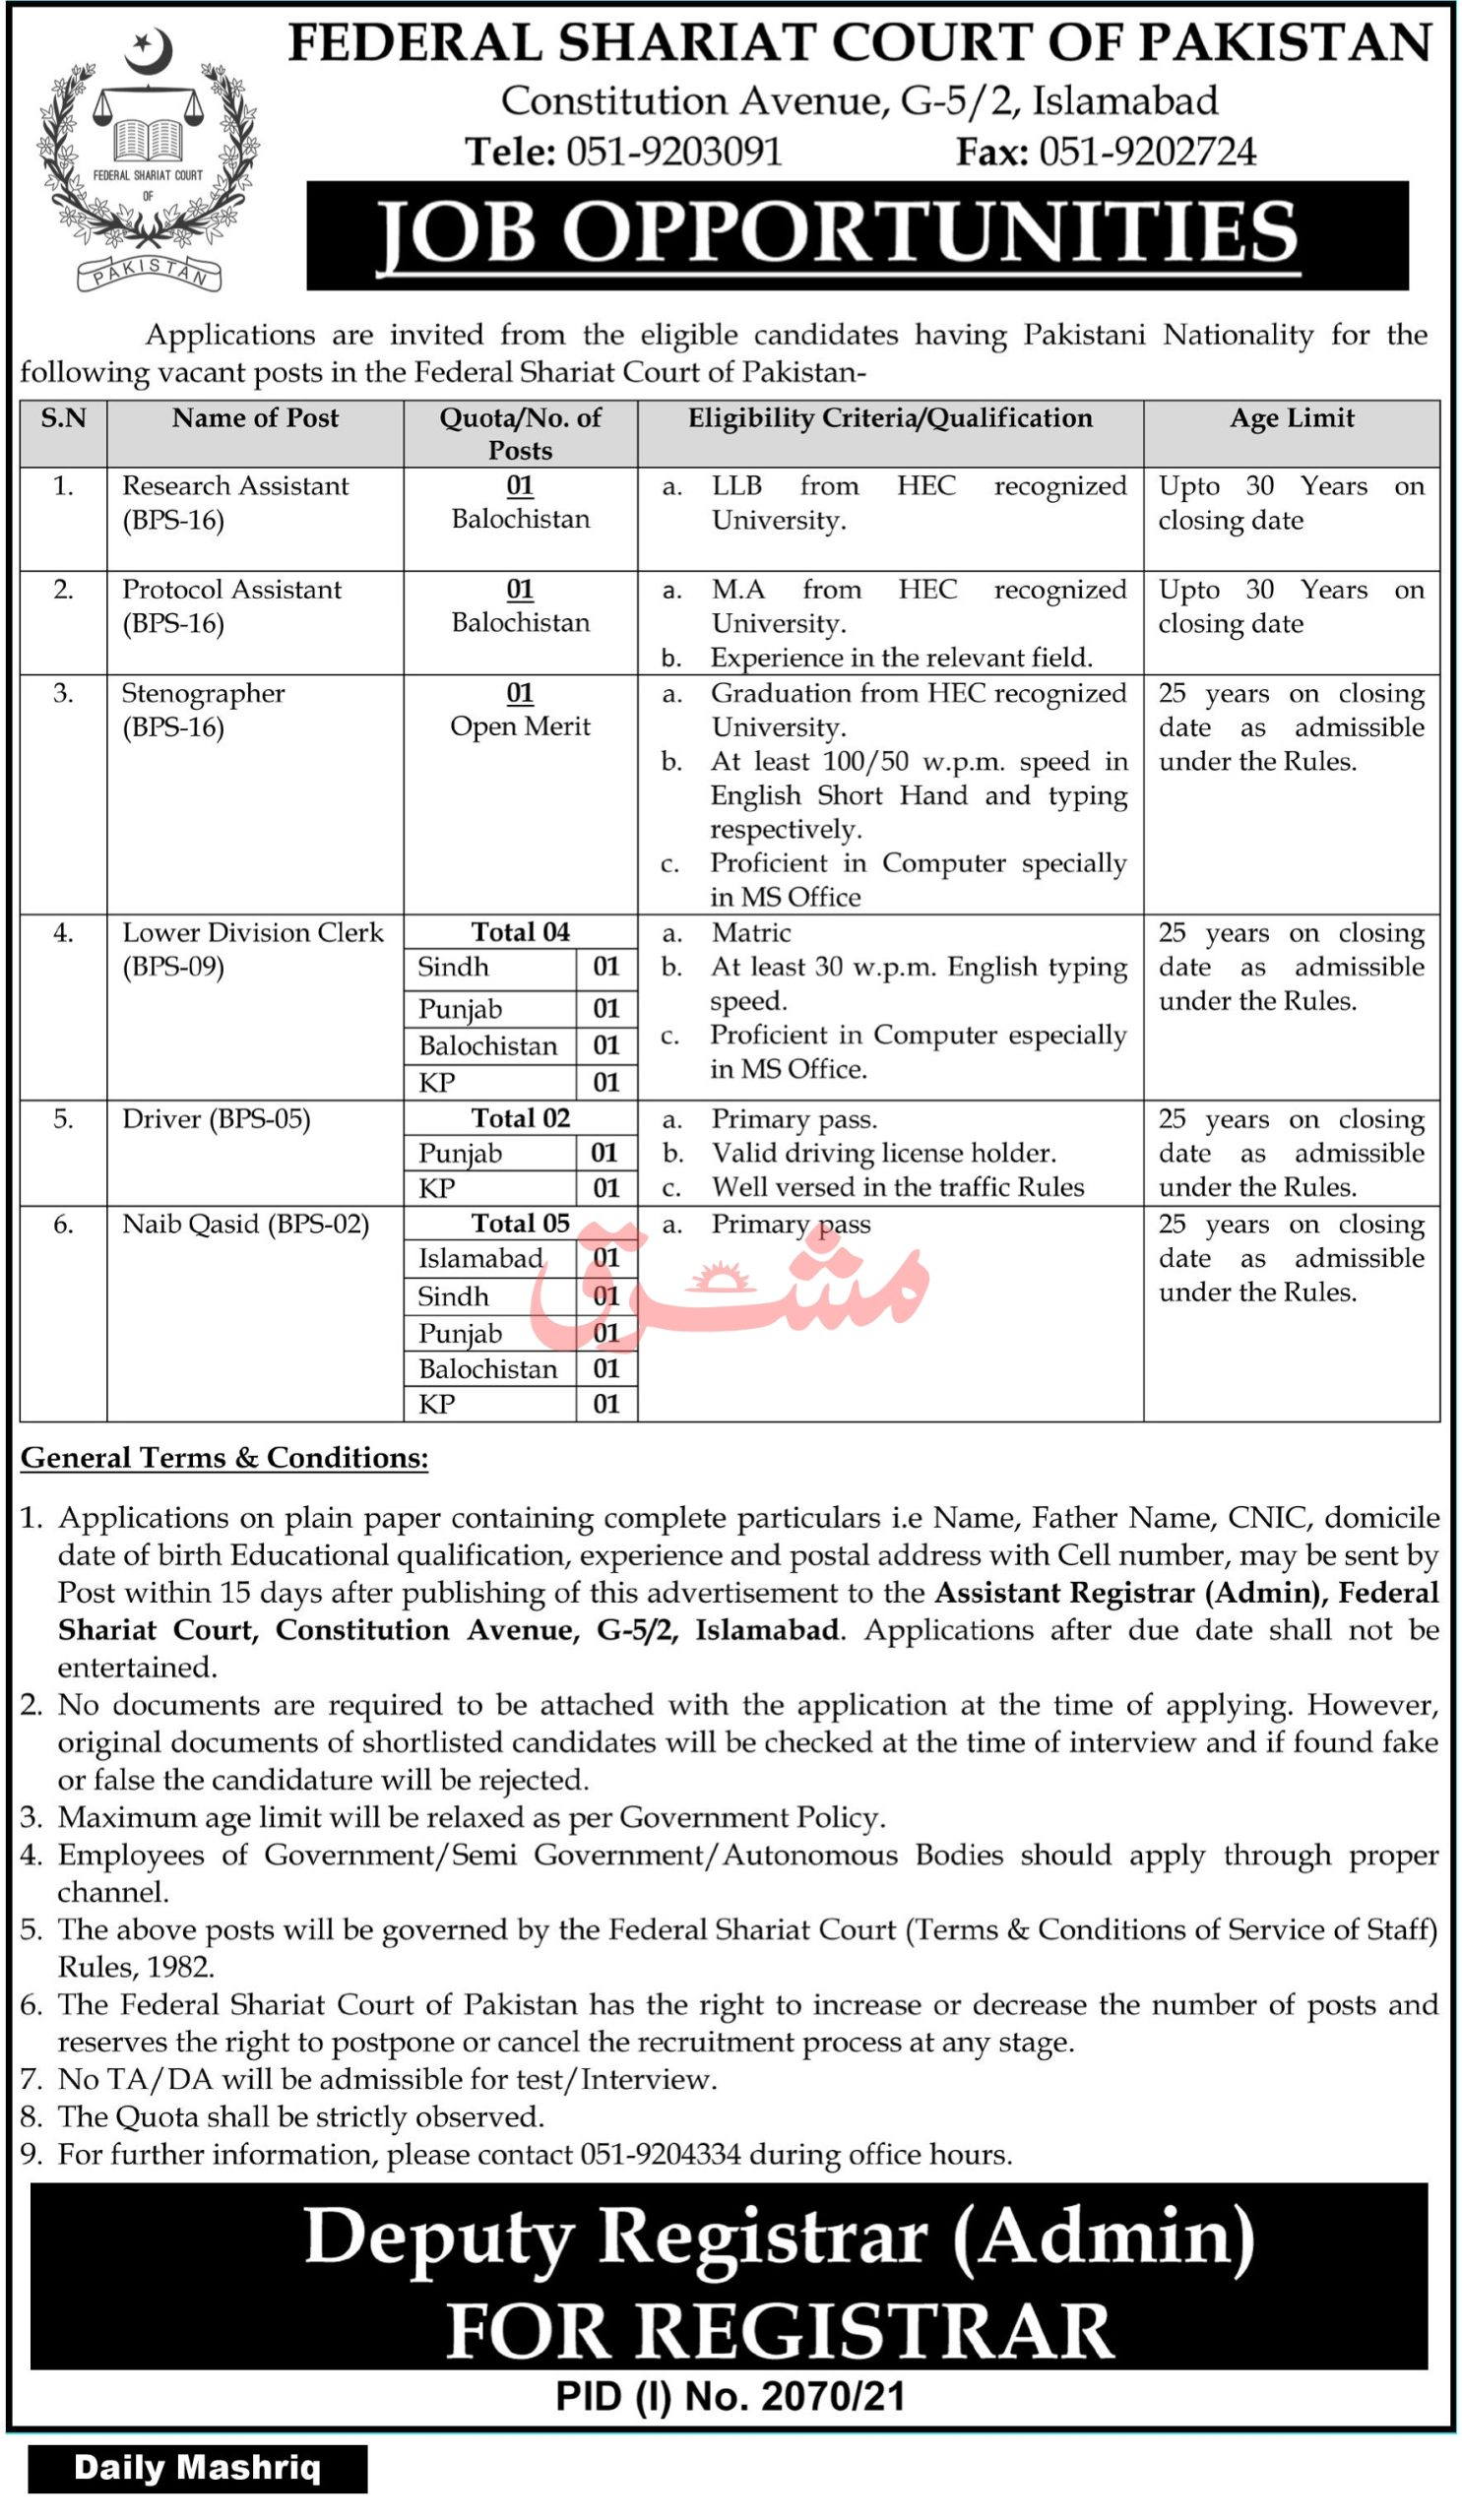 Latest Govt Jobs in Pakistan Today At Federal Shariat Court